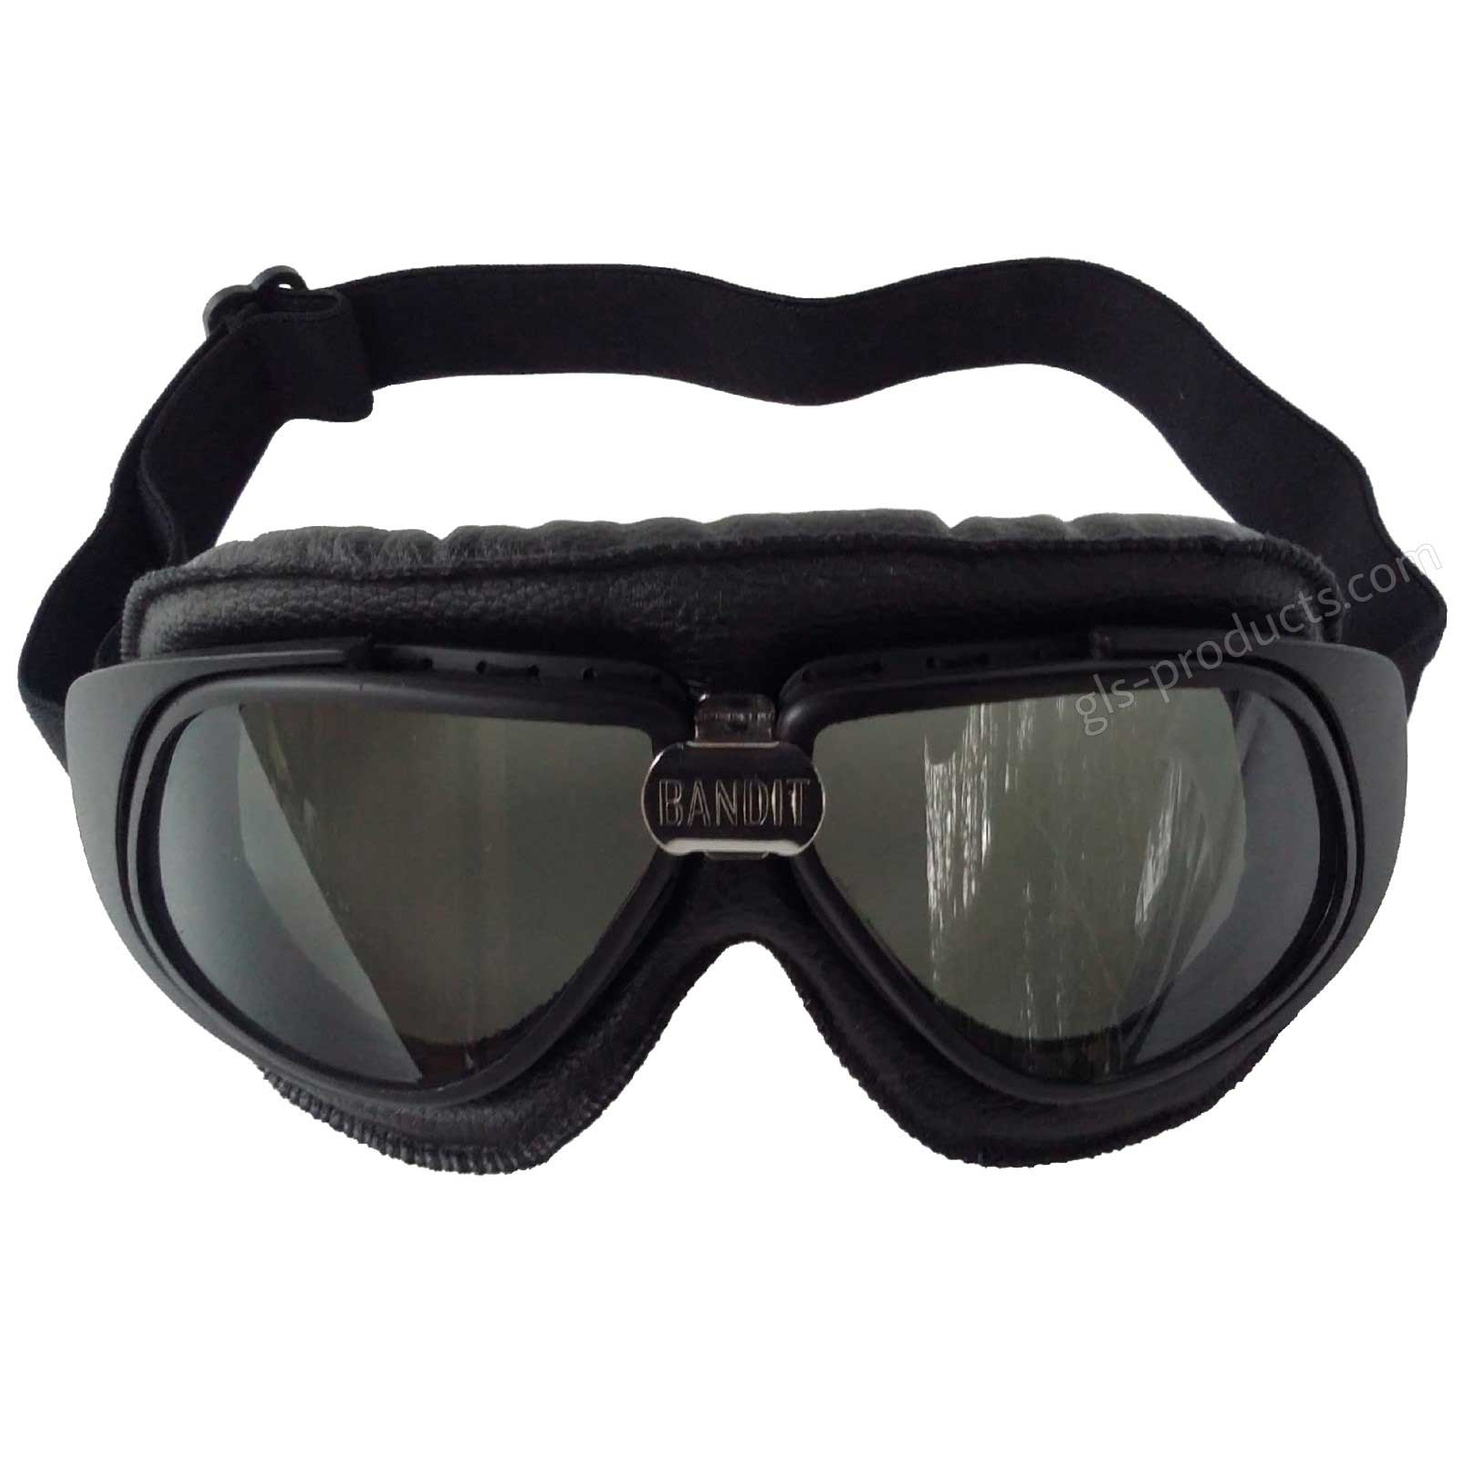 Bandit Motorcycle Glasses Goggles black – Picture 3